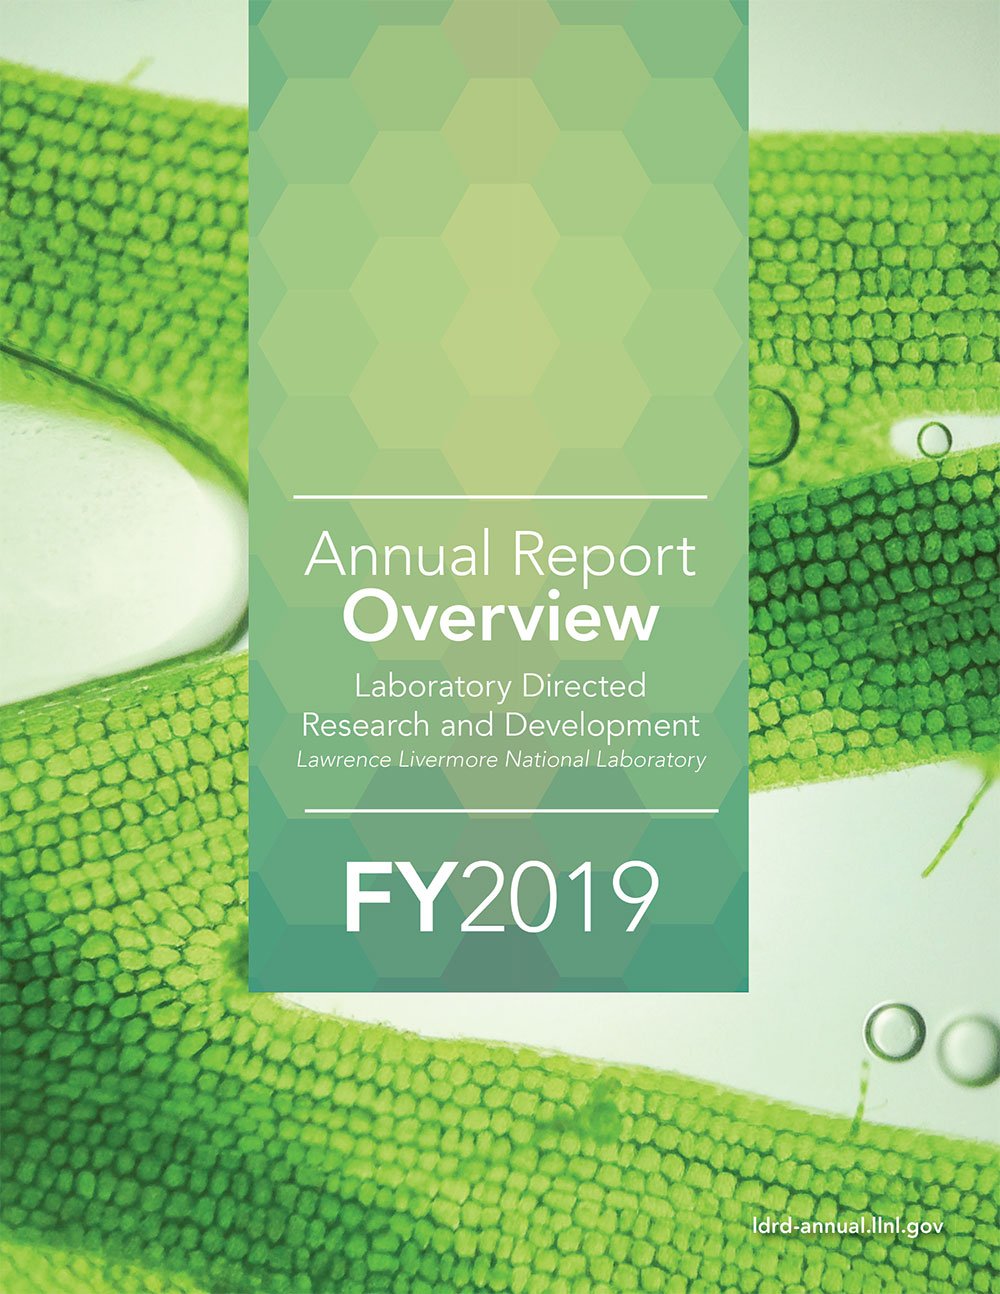 LDRD Annual Report Overview 2019, cover